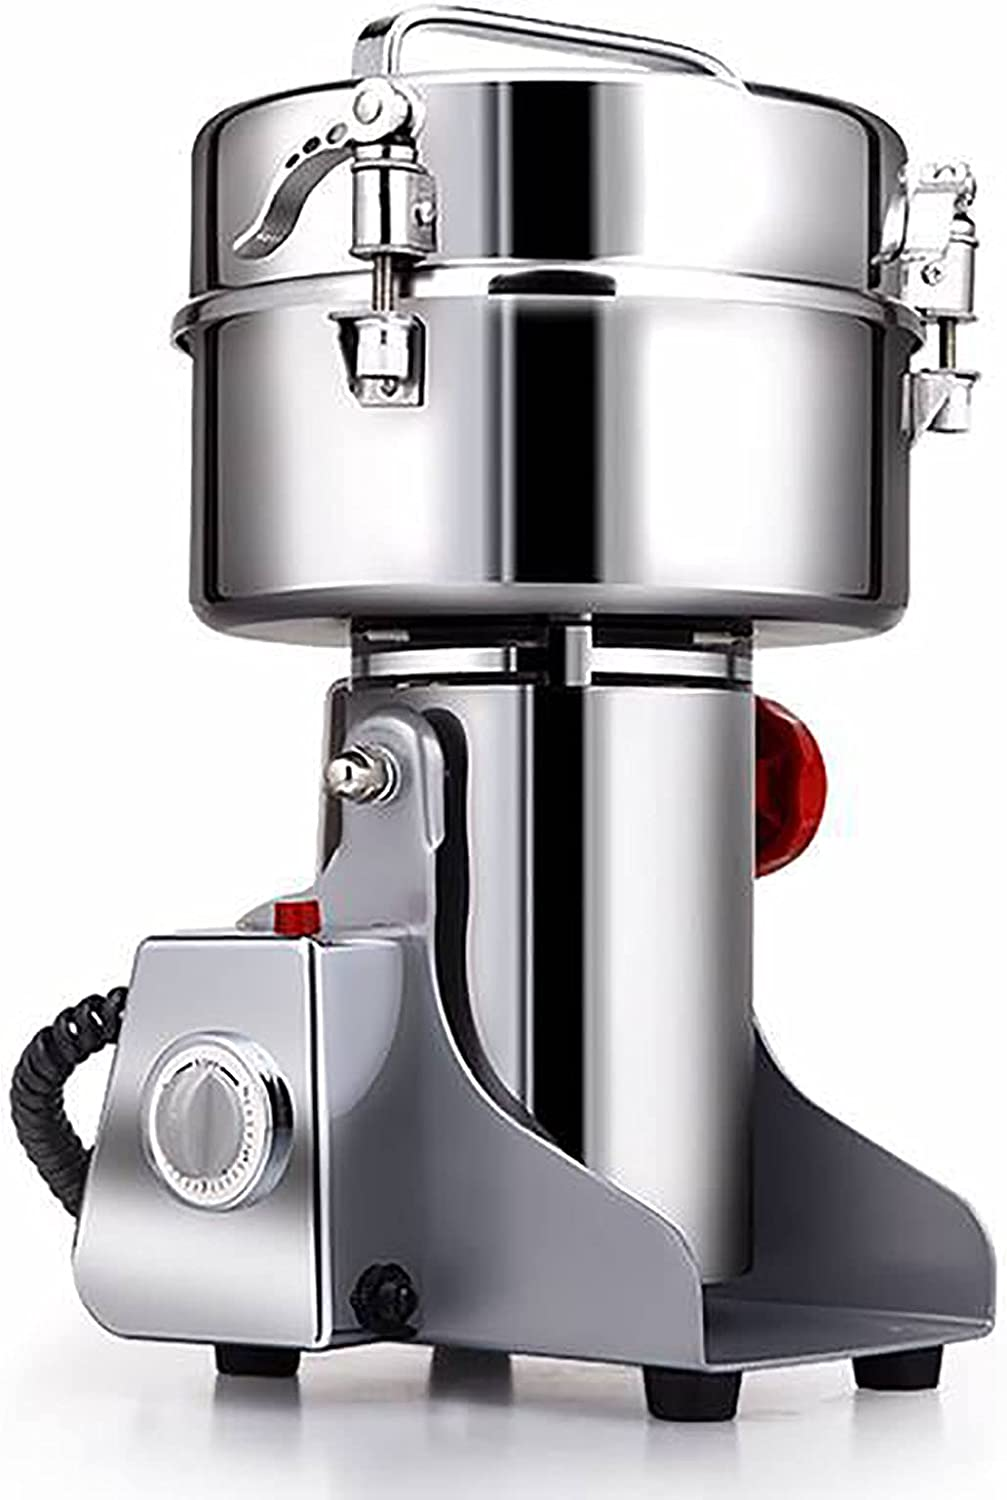 CLIng Electric Grain Mills High NEW Powd Capacity El Paso Mall Pulverizer Grinder